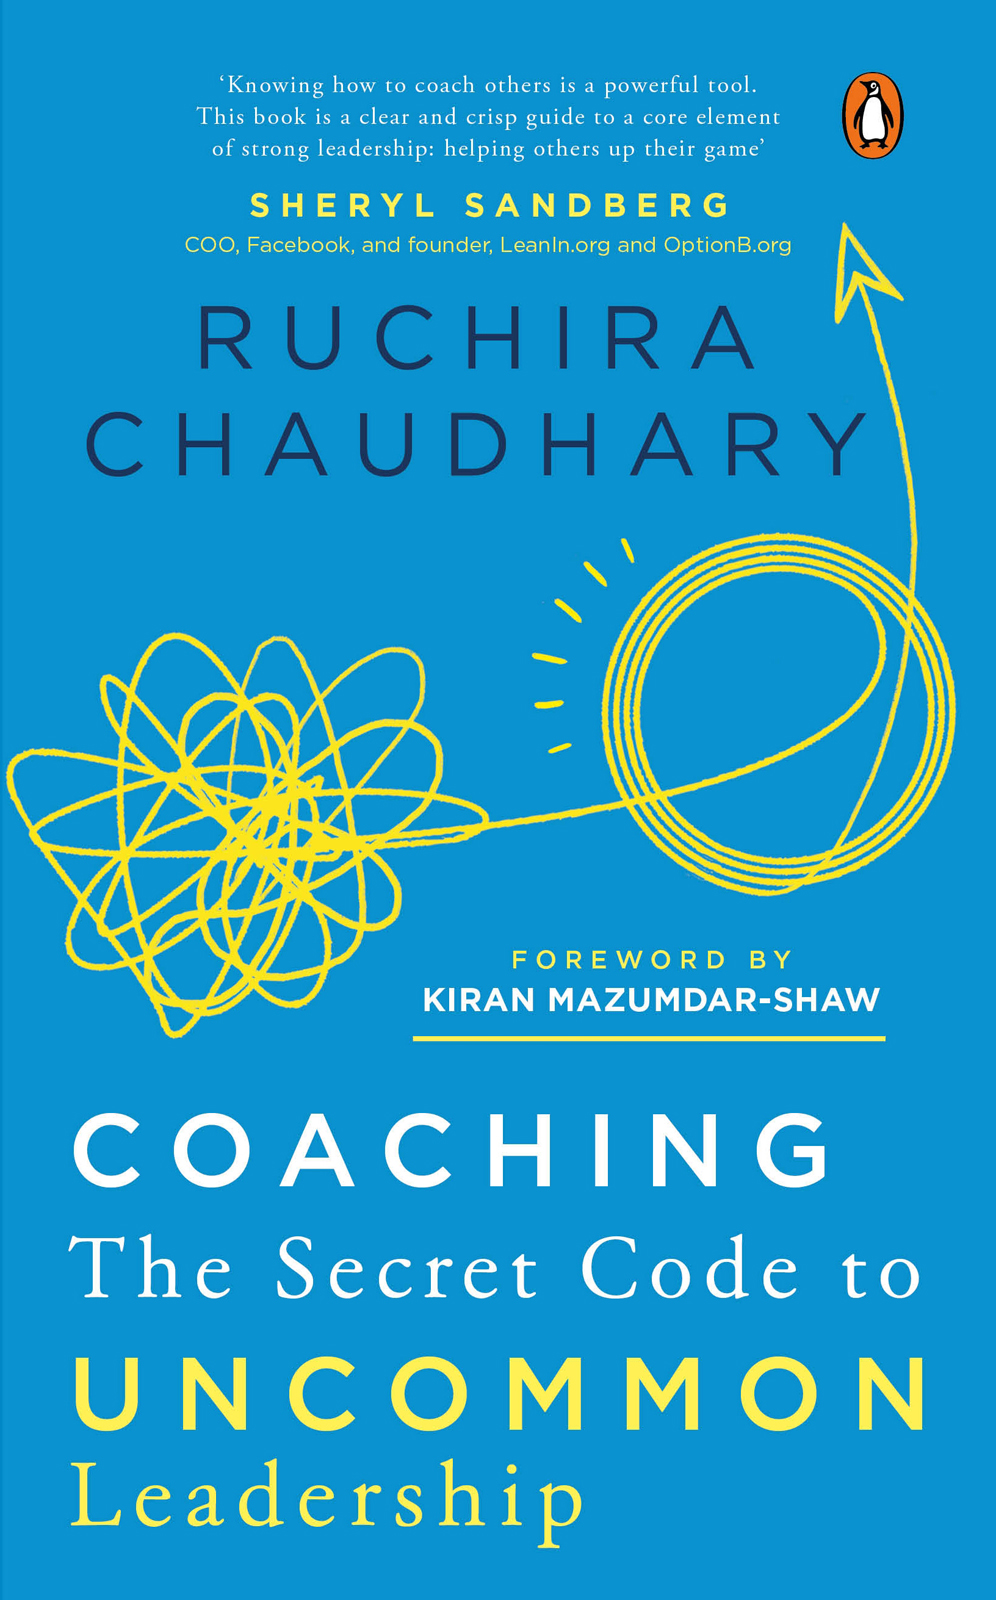 Coaching: The Secret Code to Uncommon Leadership